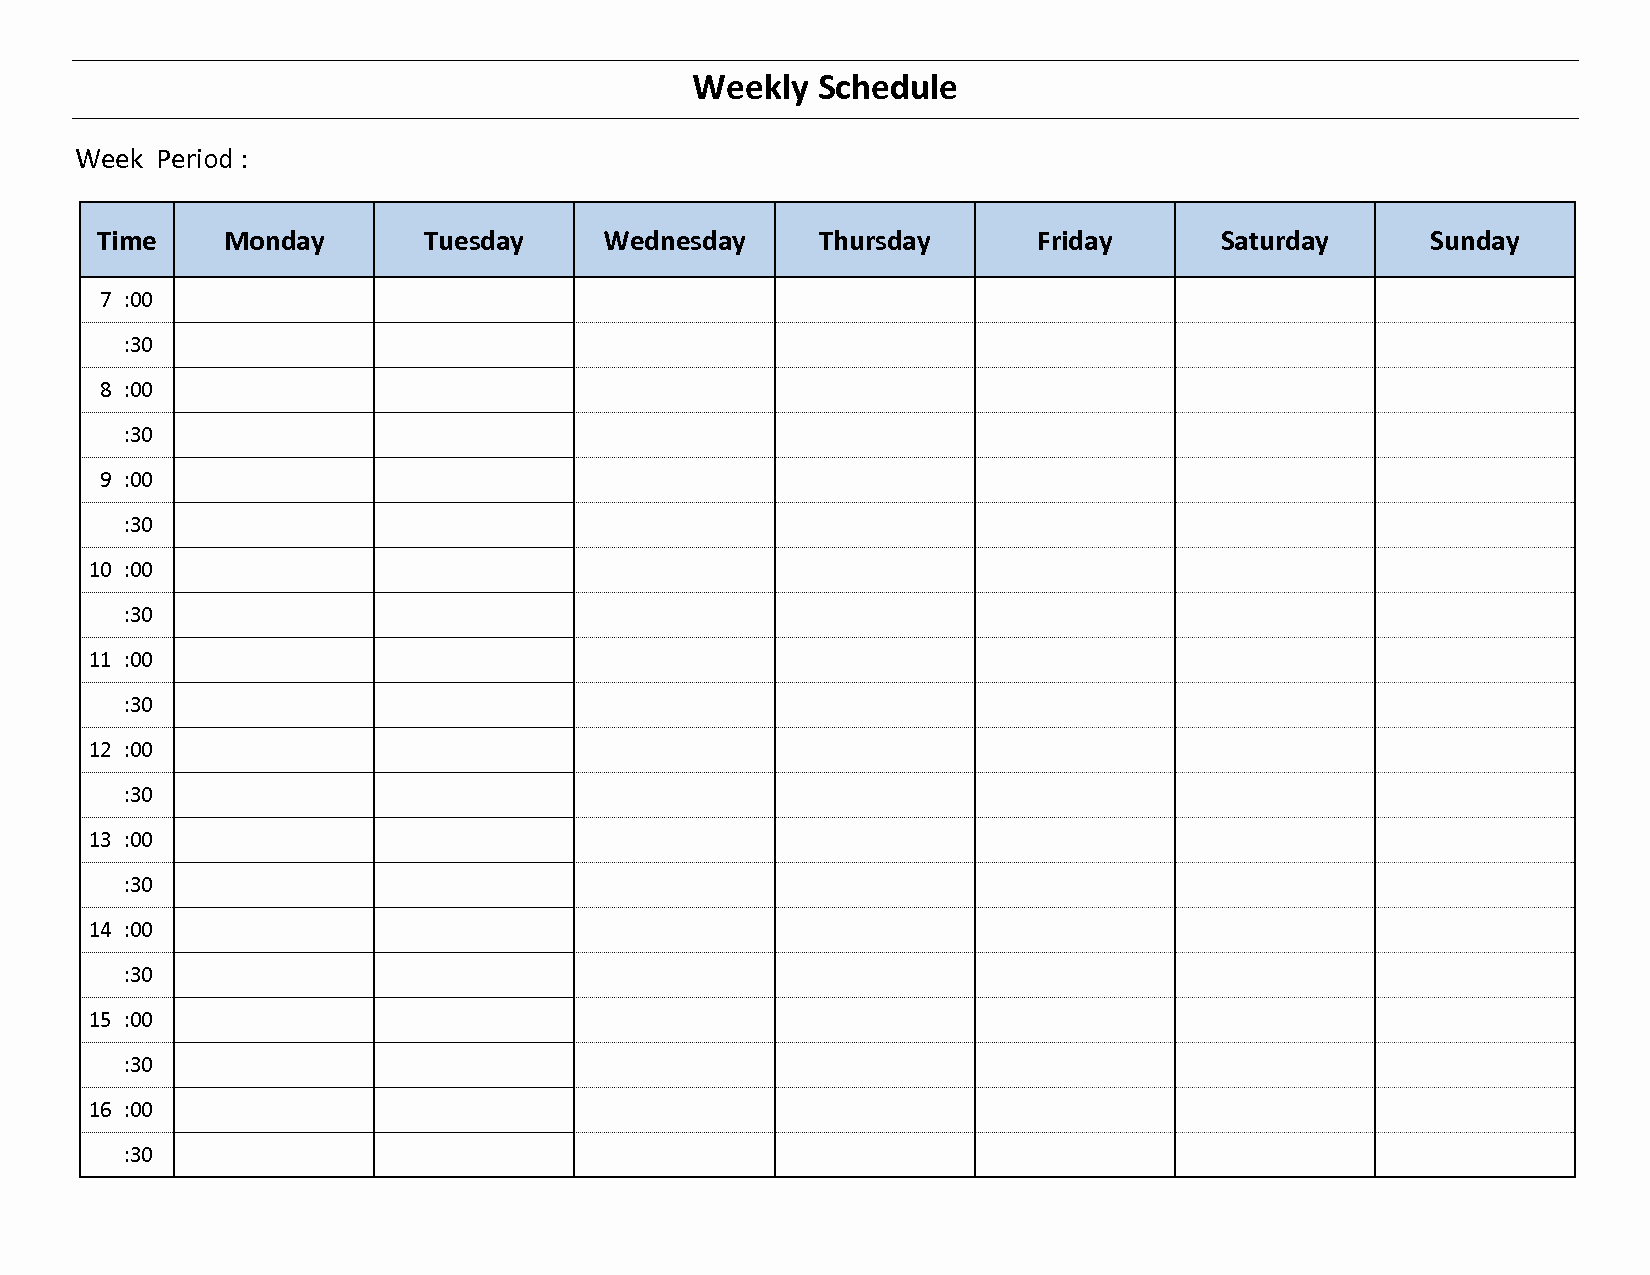 Weekly Schedule Template Printable Best Of Construction Schedule Template Excel Free Download